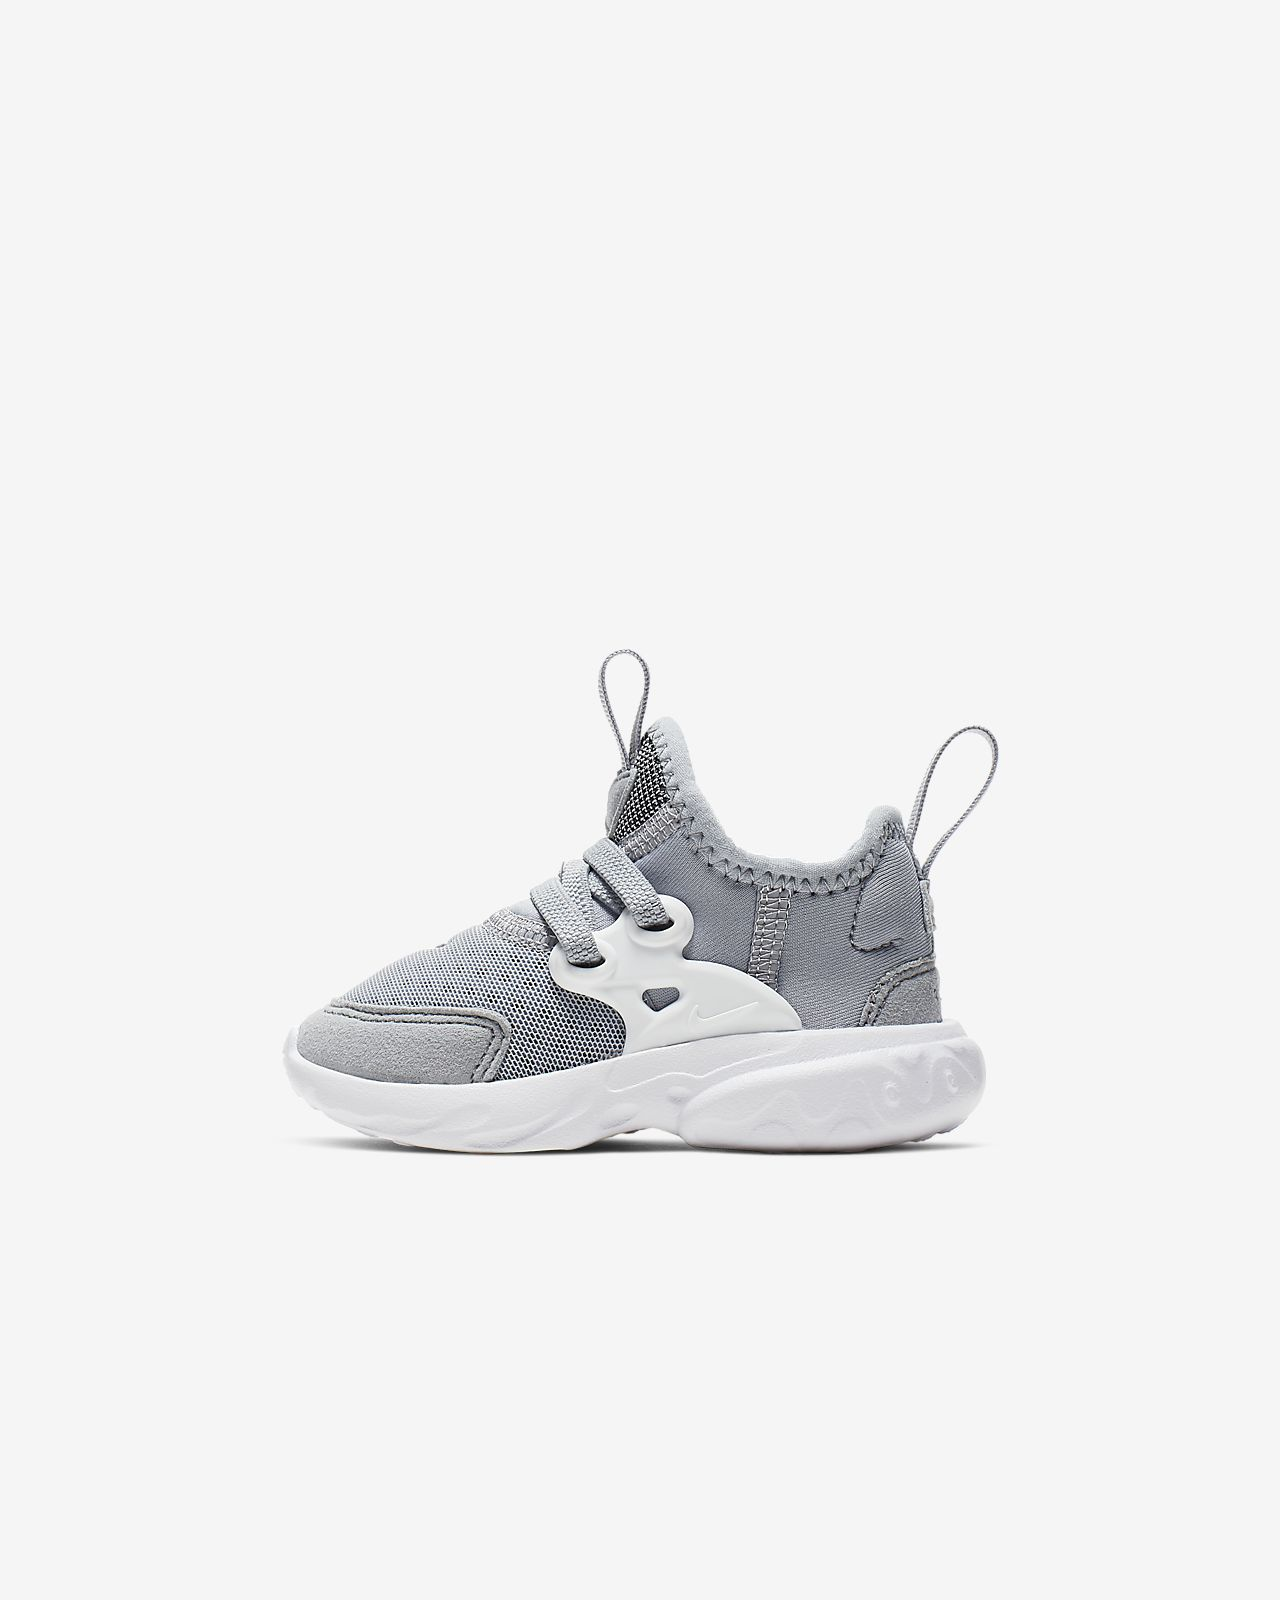 Nike RT Presto Baby/Toddler Shoe